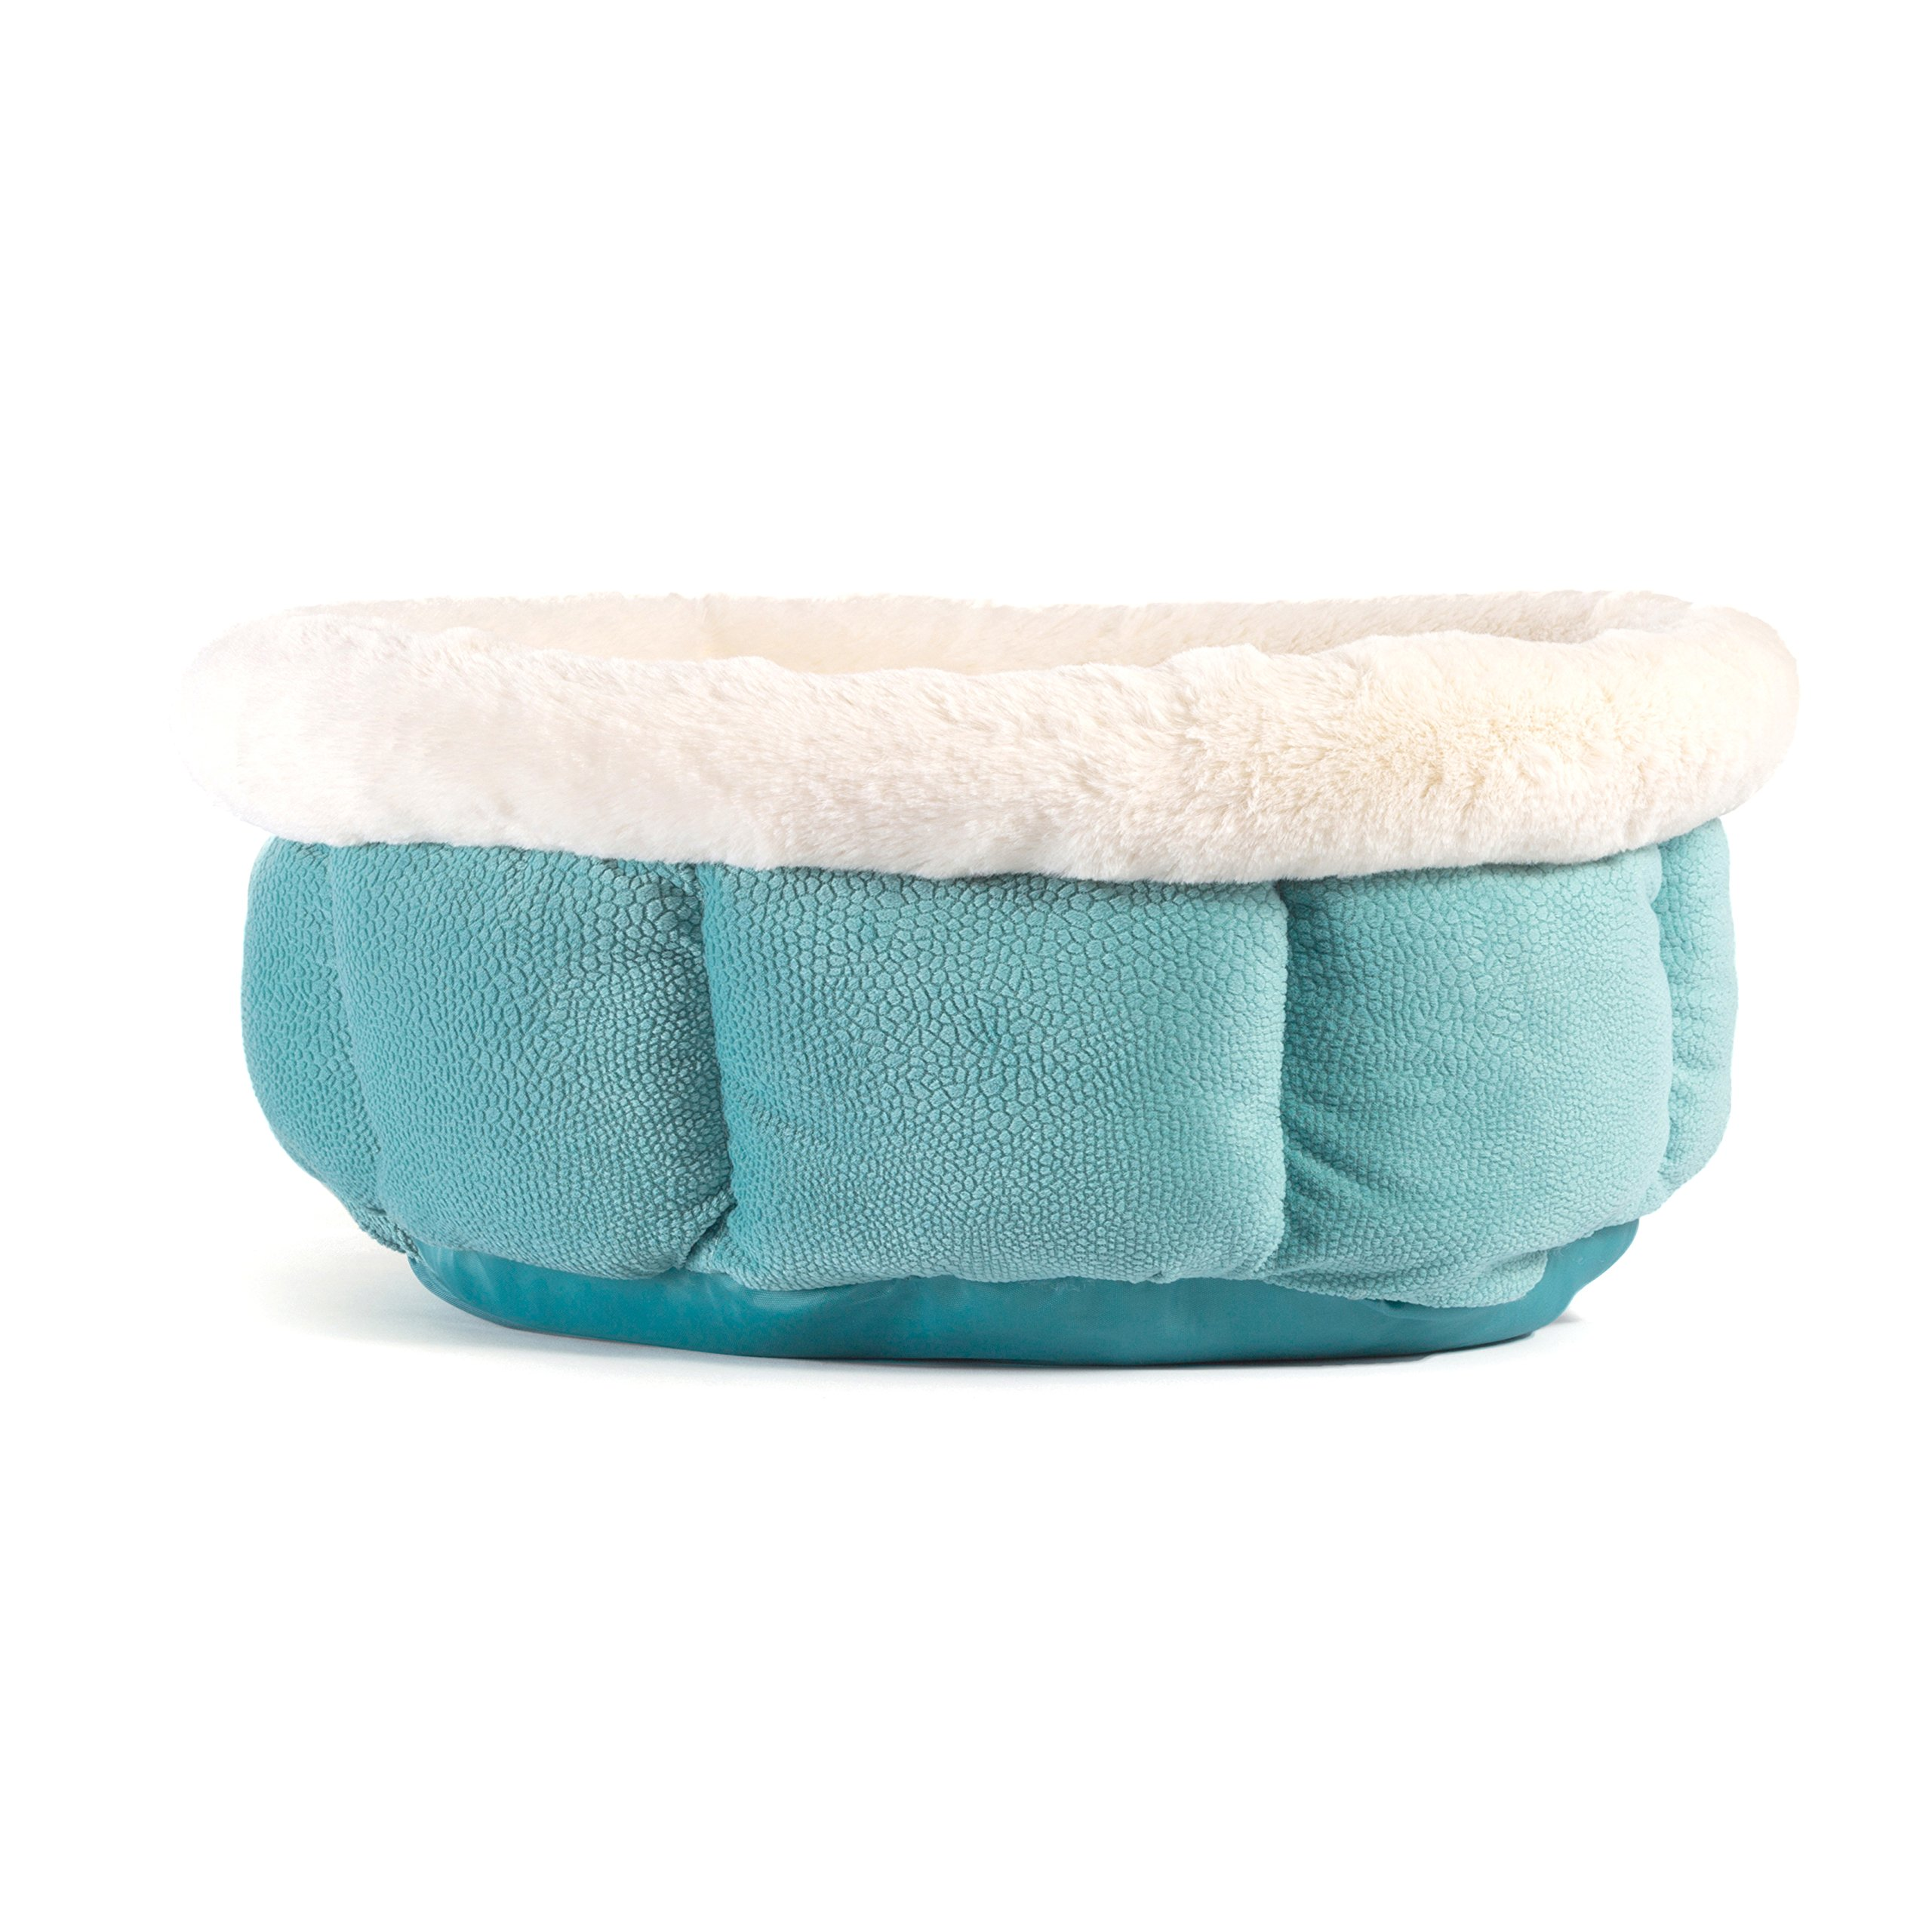 Best Friends by Sheri Small Cuddle Cup - Cozy, Comfortable Cat and Dog House Bed - High-Walls for Improved Sleep, TidePool by Best Friends by Sheri (Image #2)